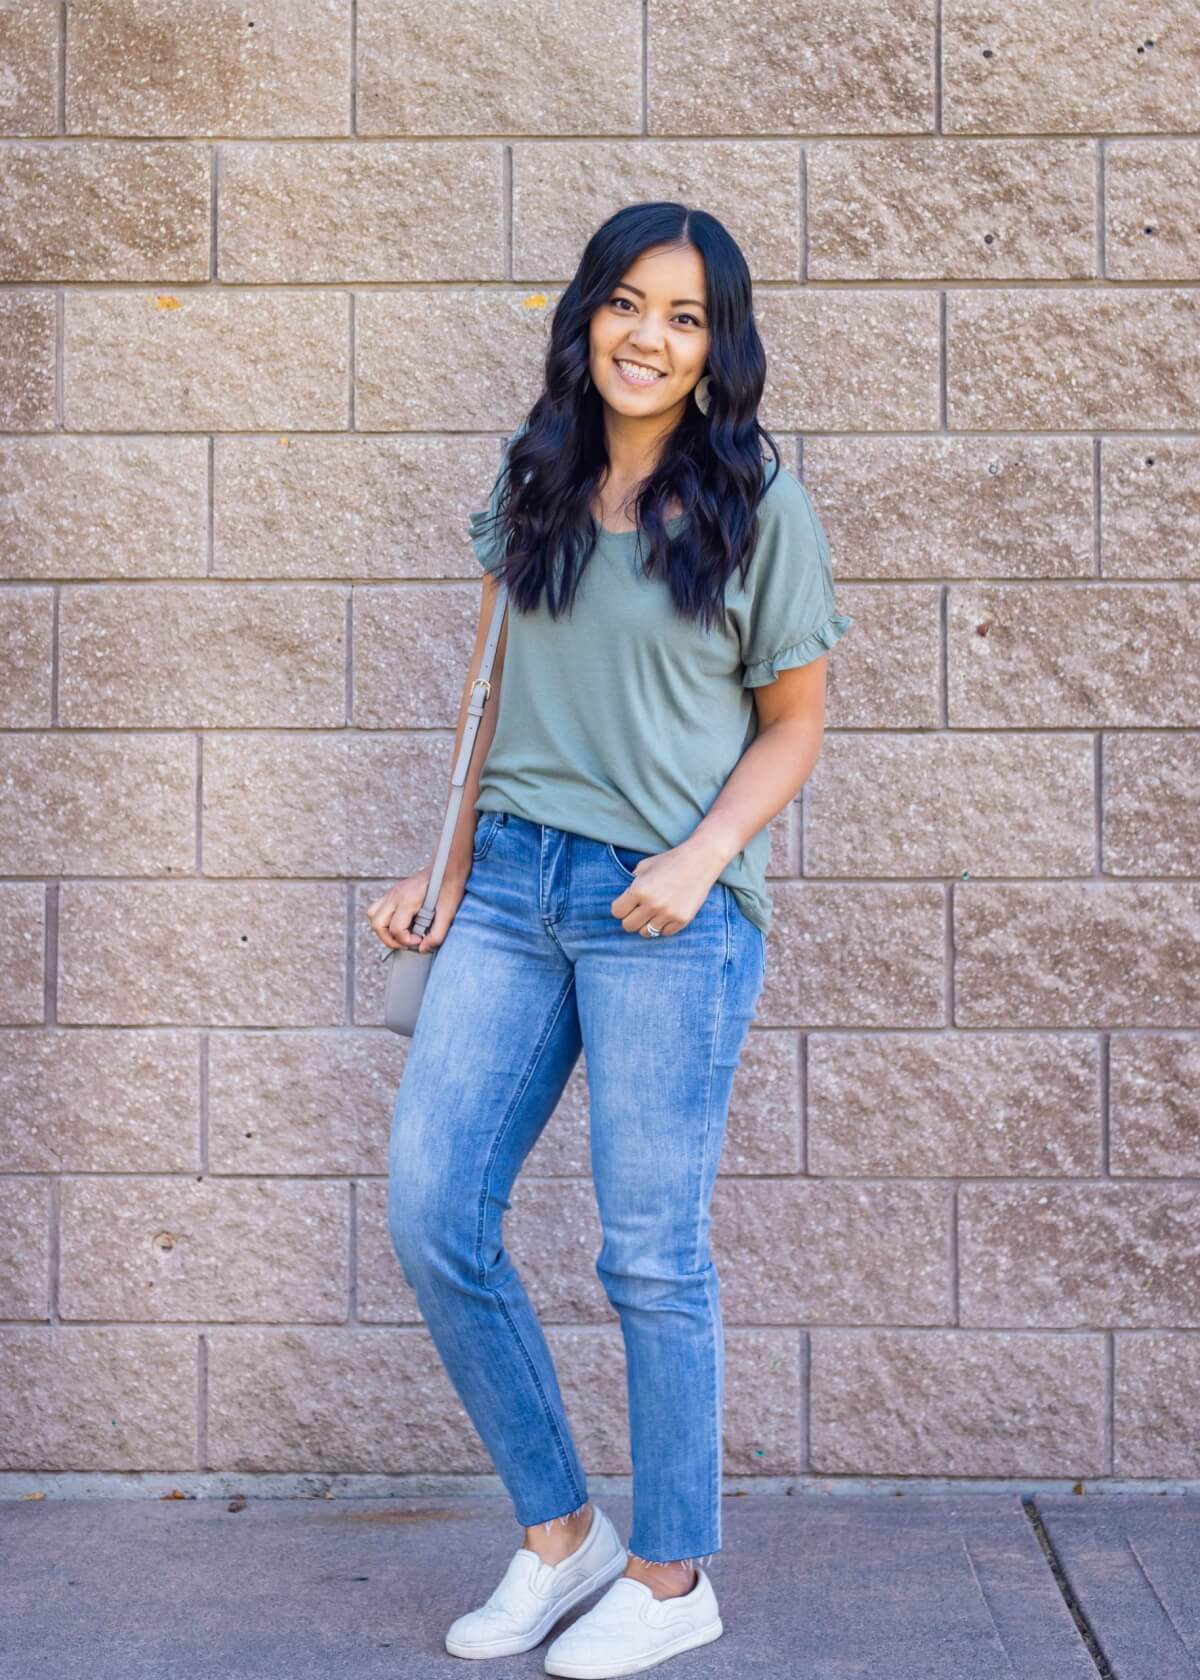 Casual Early Fall Outfit: sage green ruffle sleeve t-shirt + light blue straight leg raw hem jeans + white slip-on sneakers + white earrings + gray crossbody bag